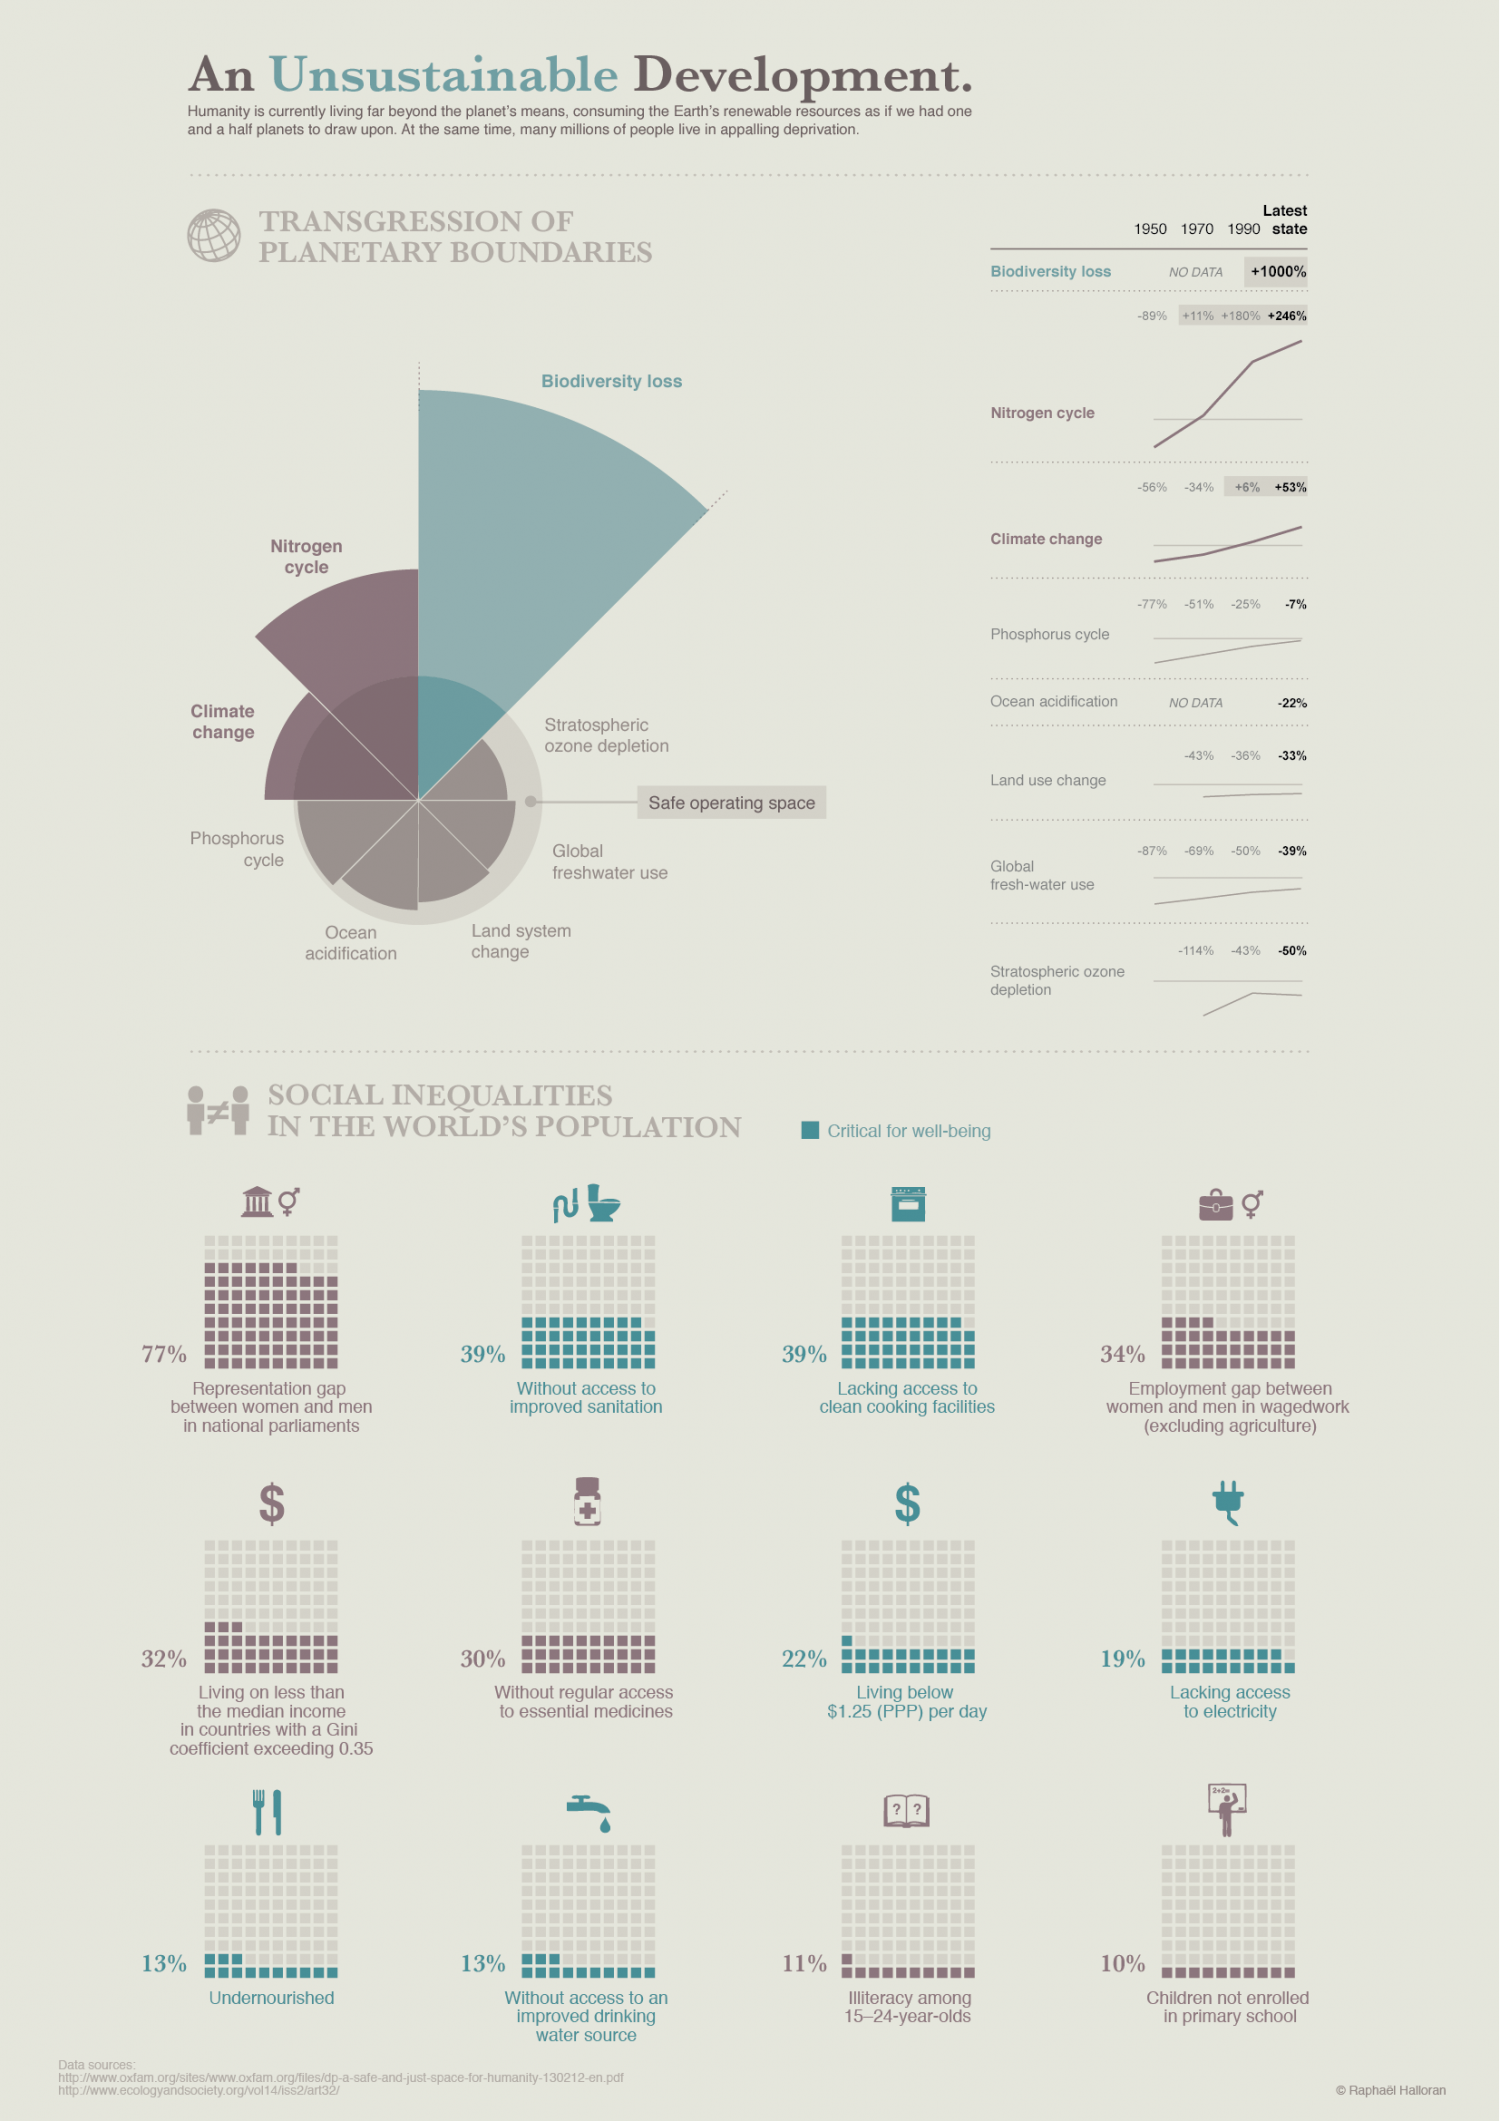 An Unsustainable Development Infographic